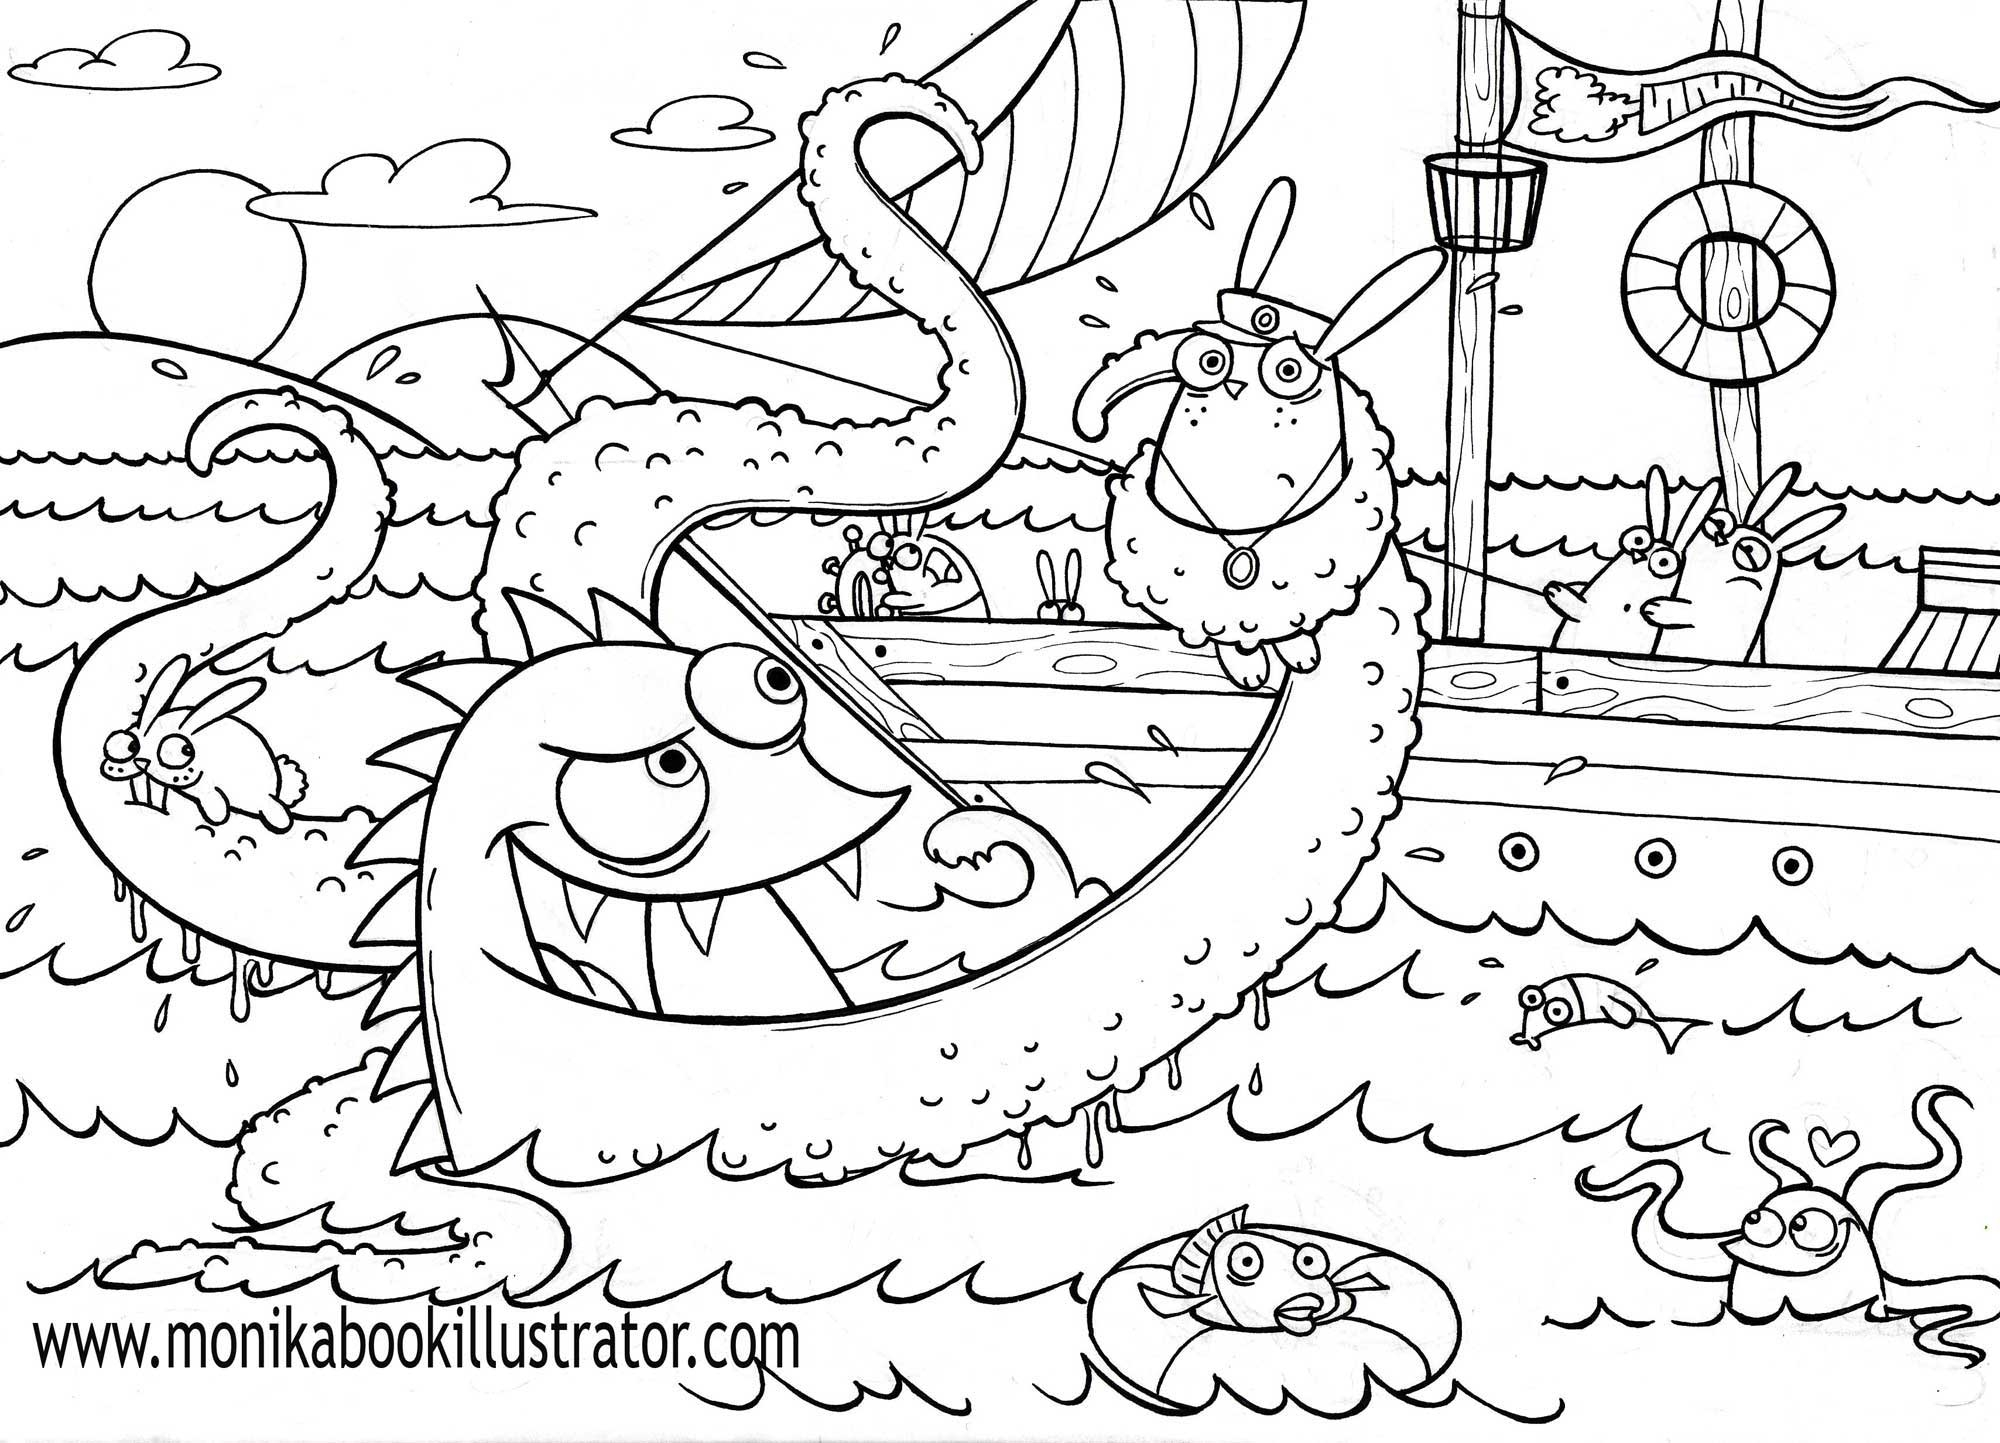 free swear word coloring pages - monsters coloring page